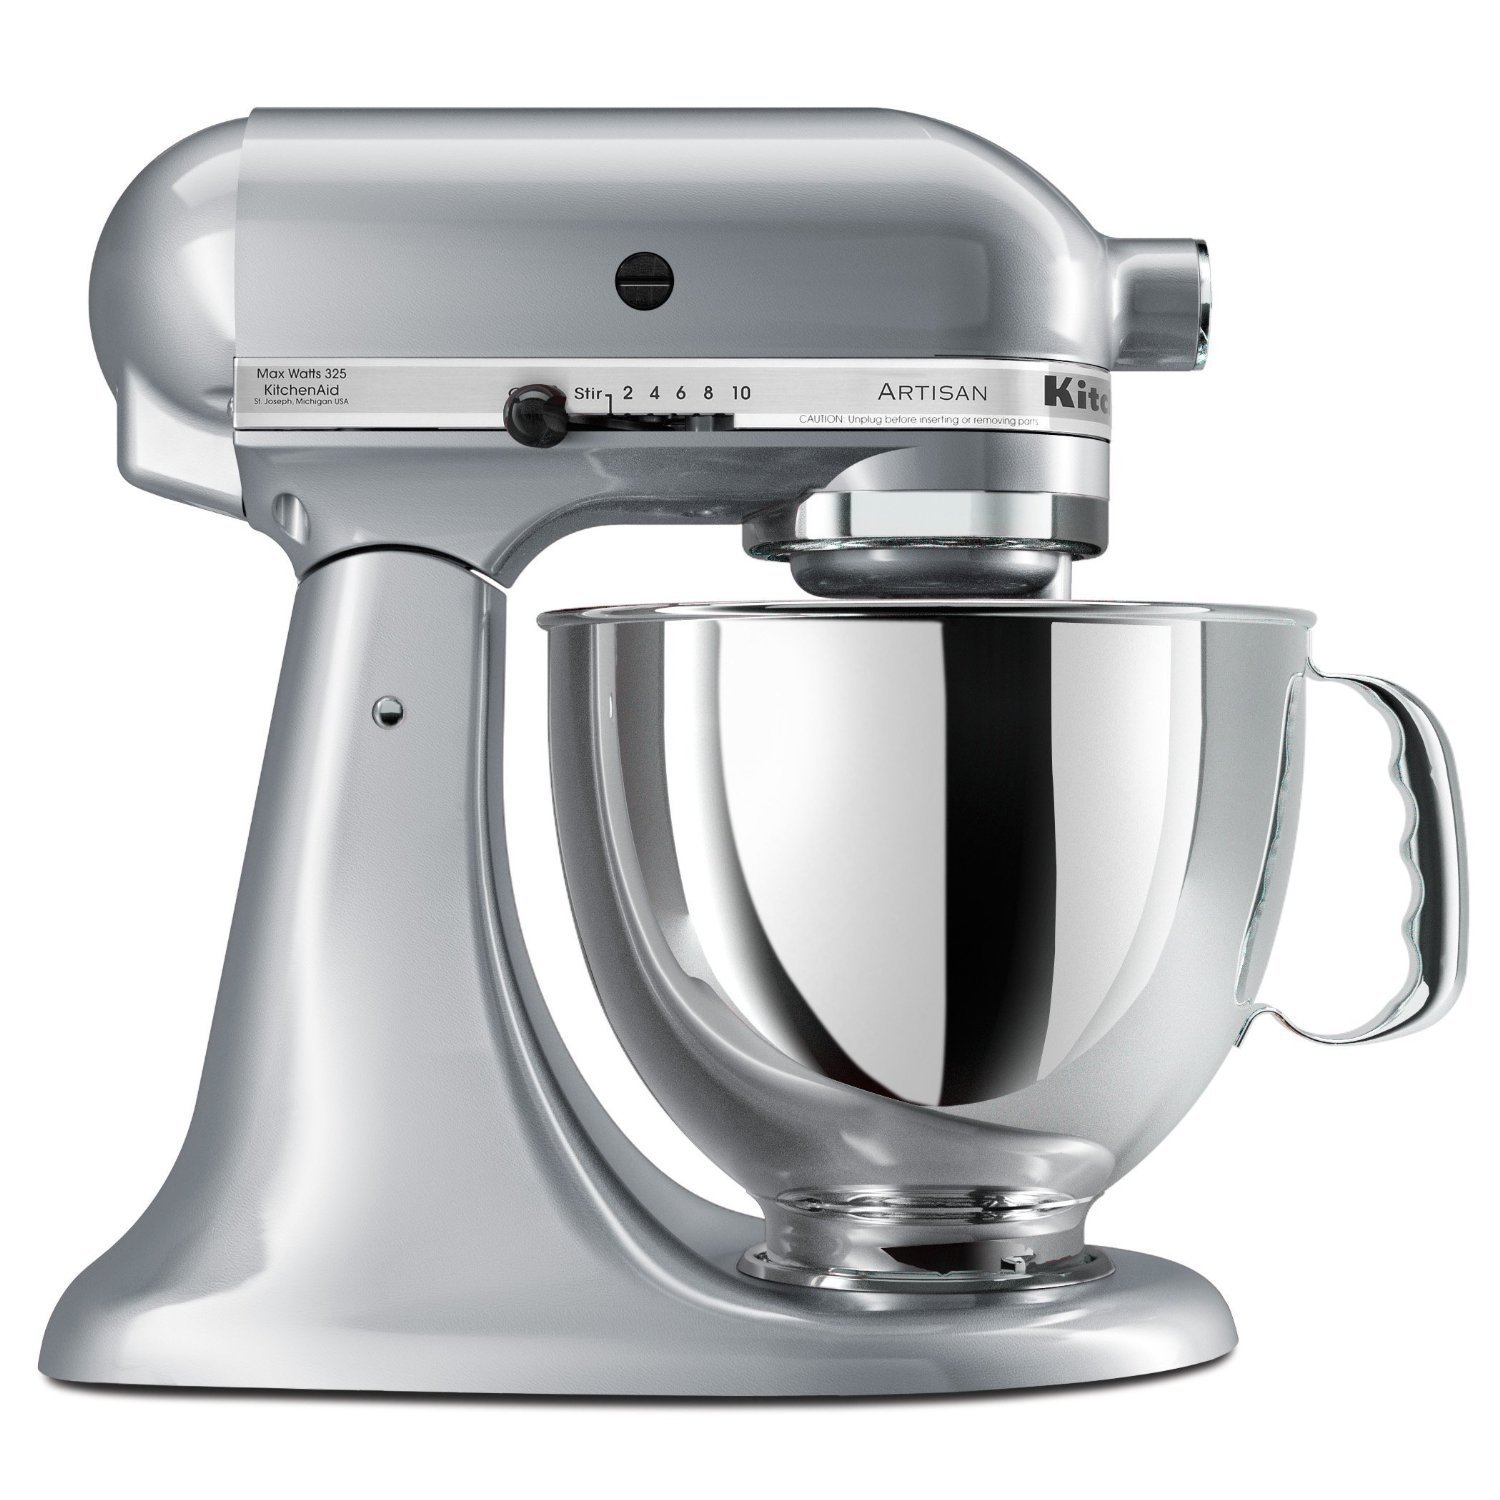 Grey Kitchenaid Mixer: LittleKitchenShop: KitchenAid Stand Mixer Artisan Series 5